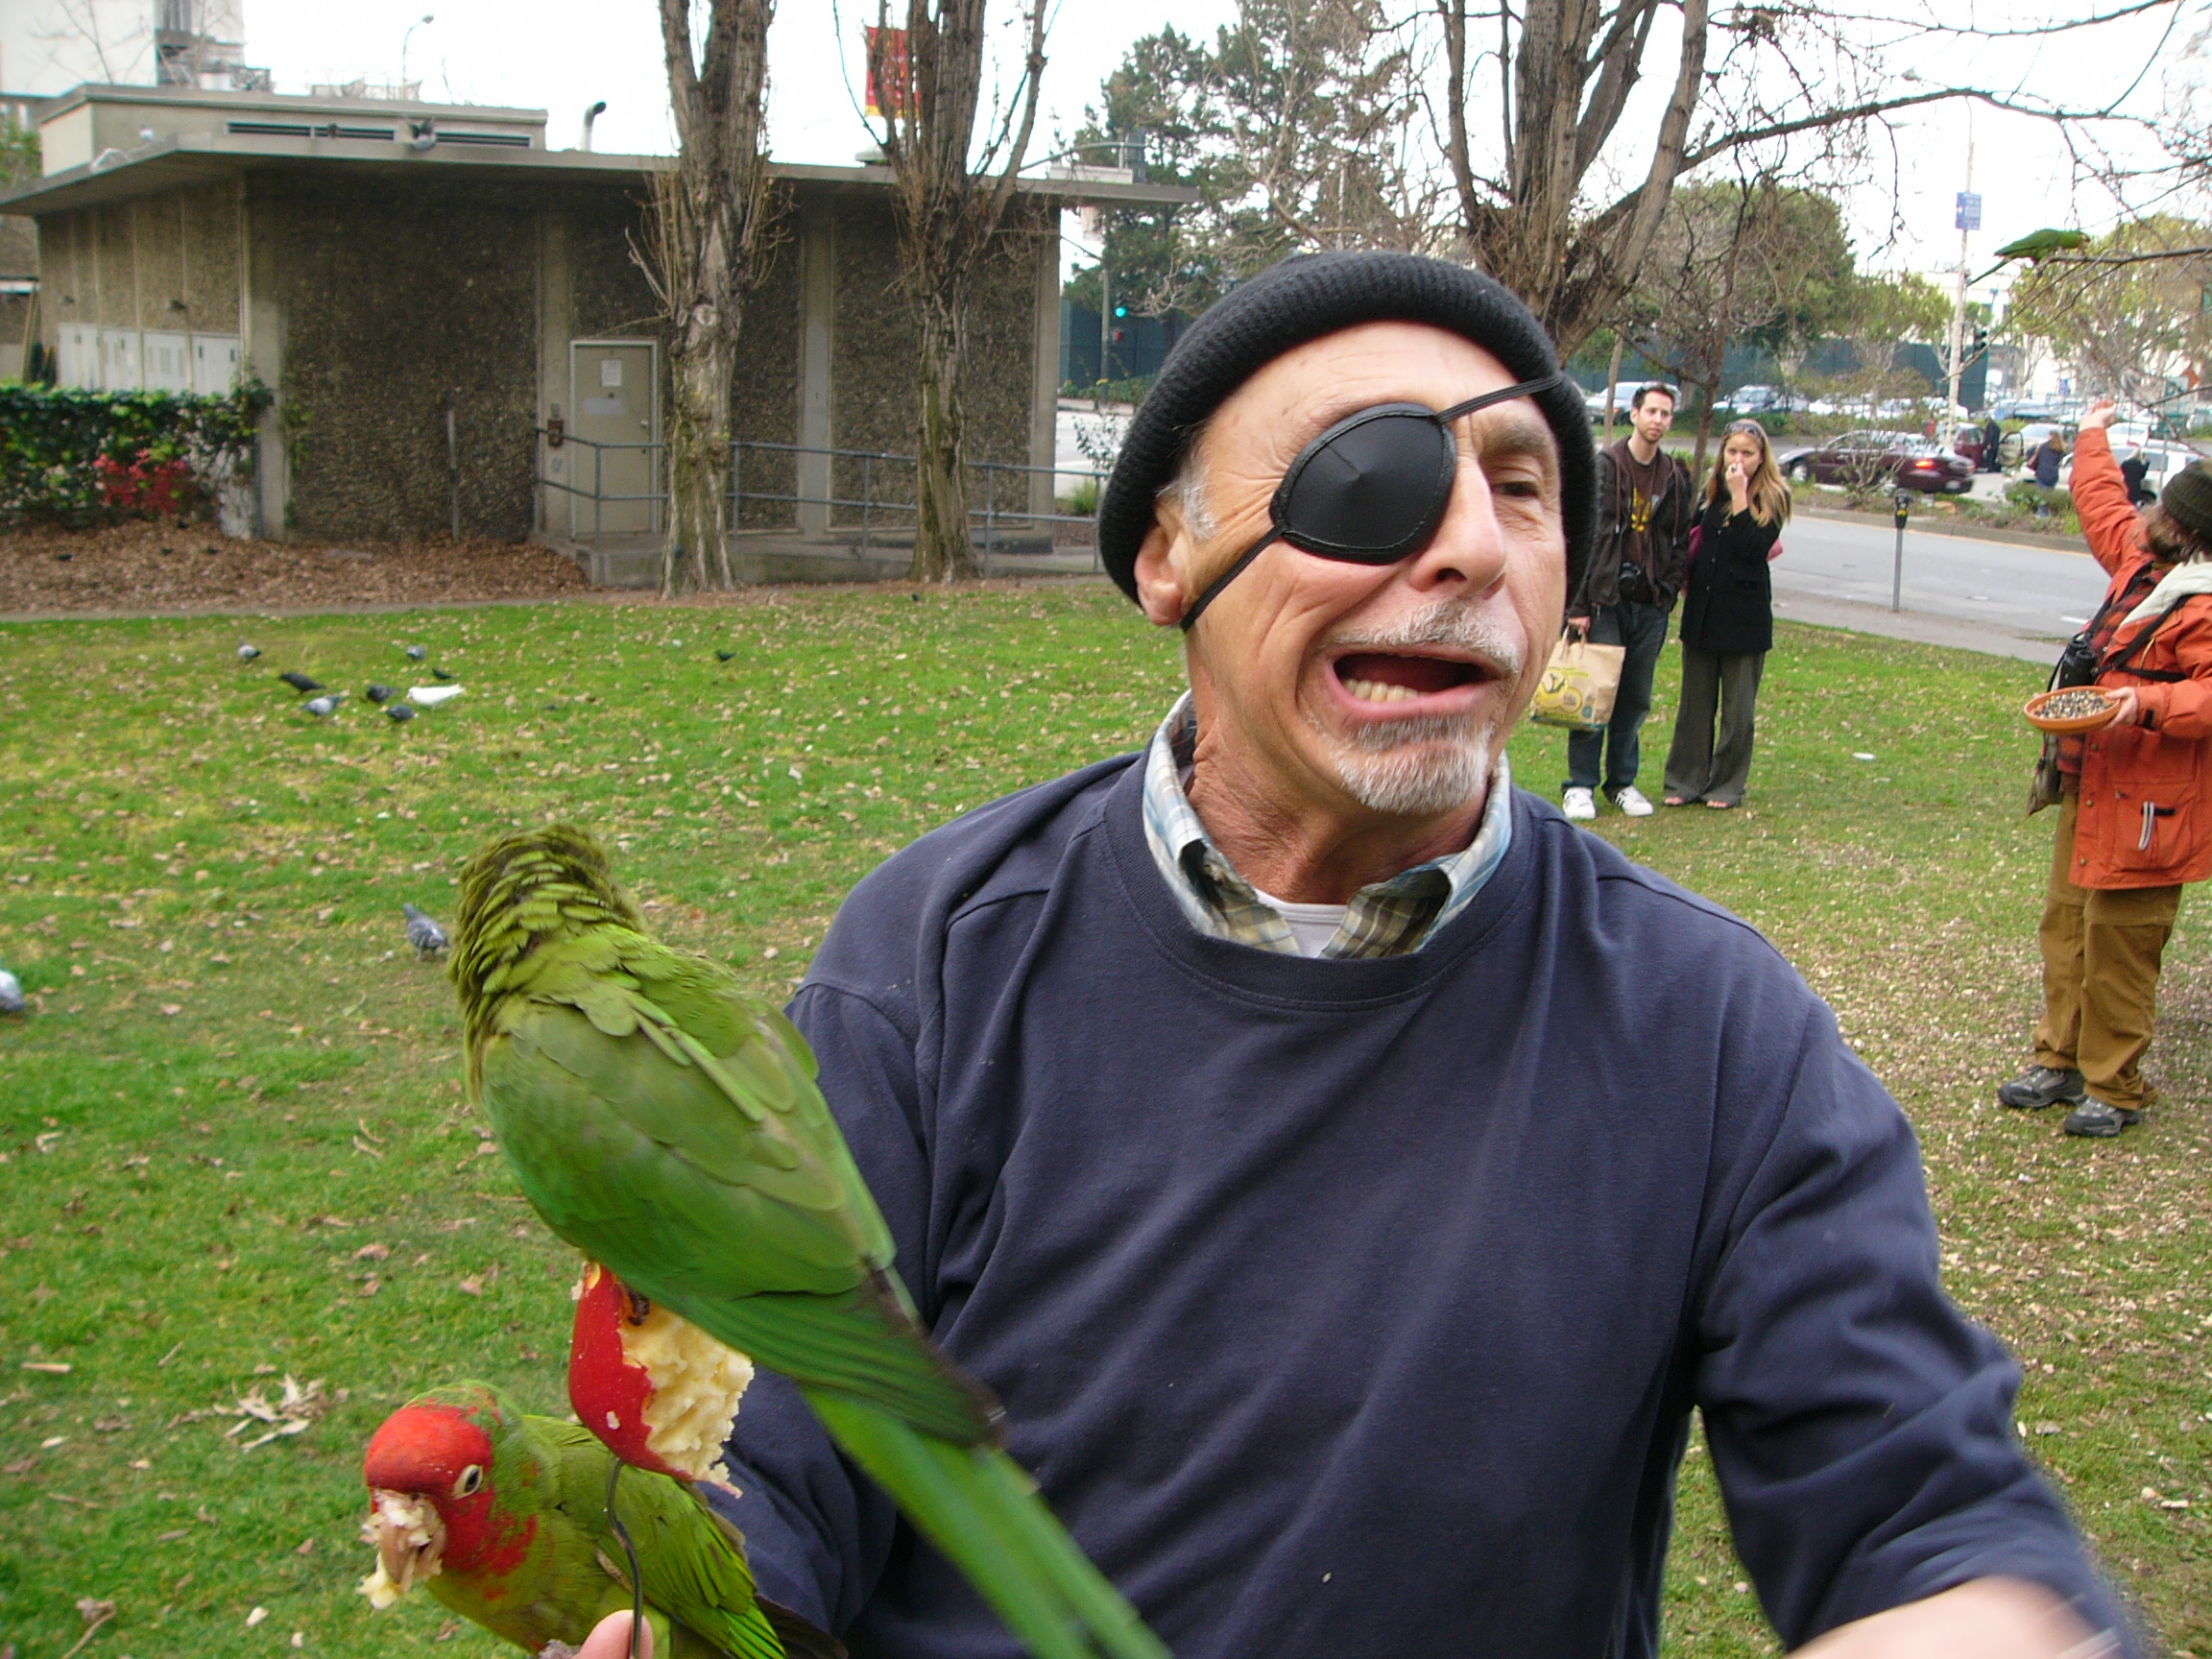 http://upload.wikimedia.org/wikipedia/commons/8/88/Pirate_costume_eyepatch.jpg